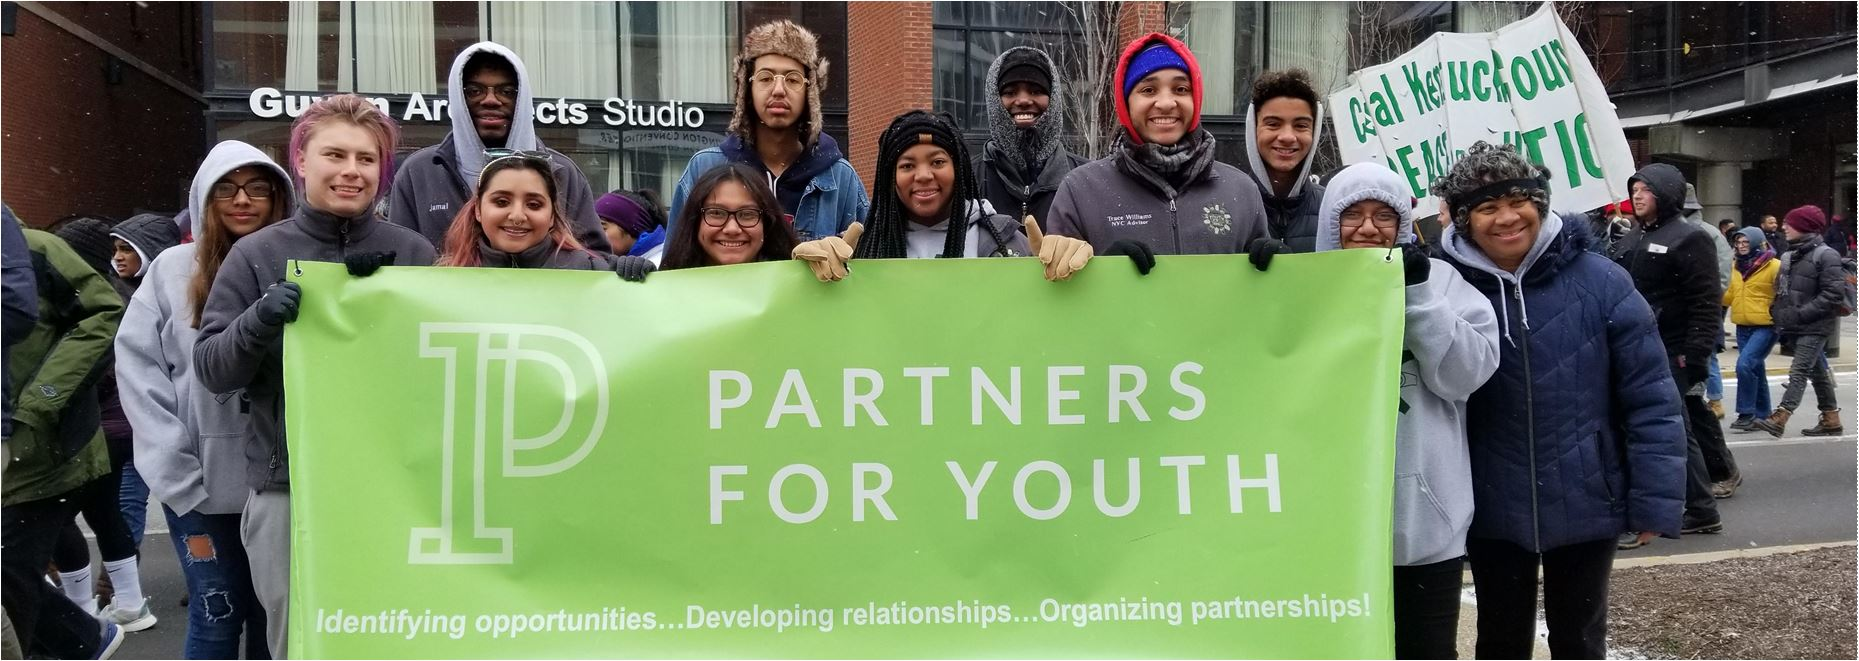 Partners for Youth at MLK event